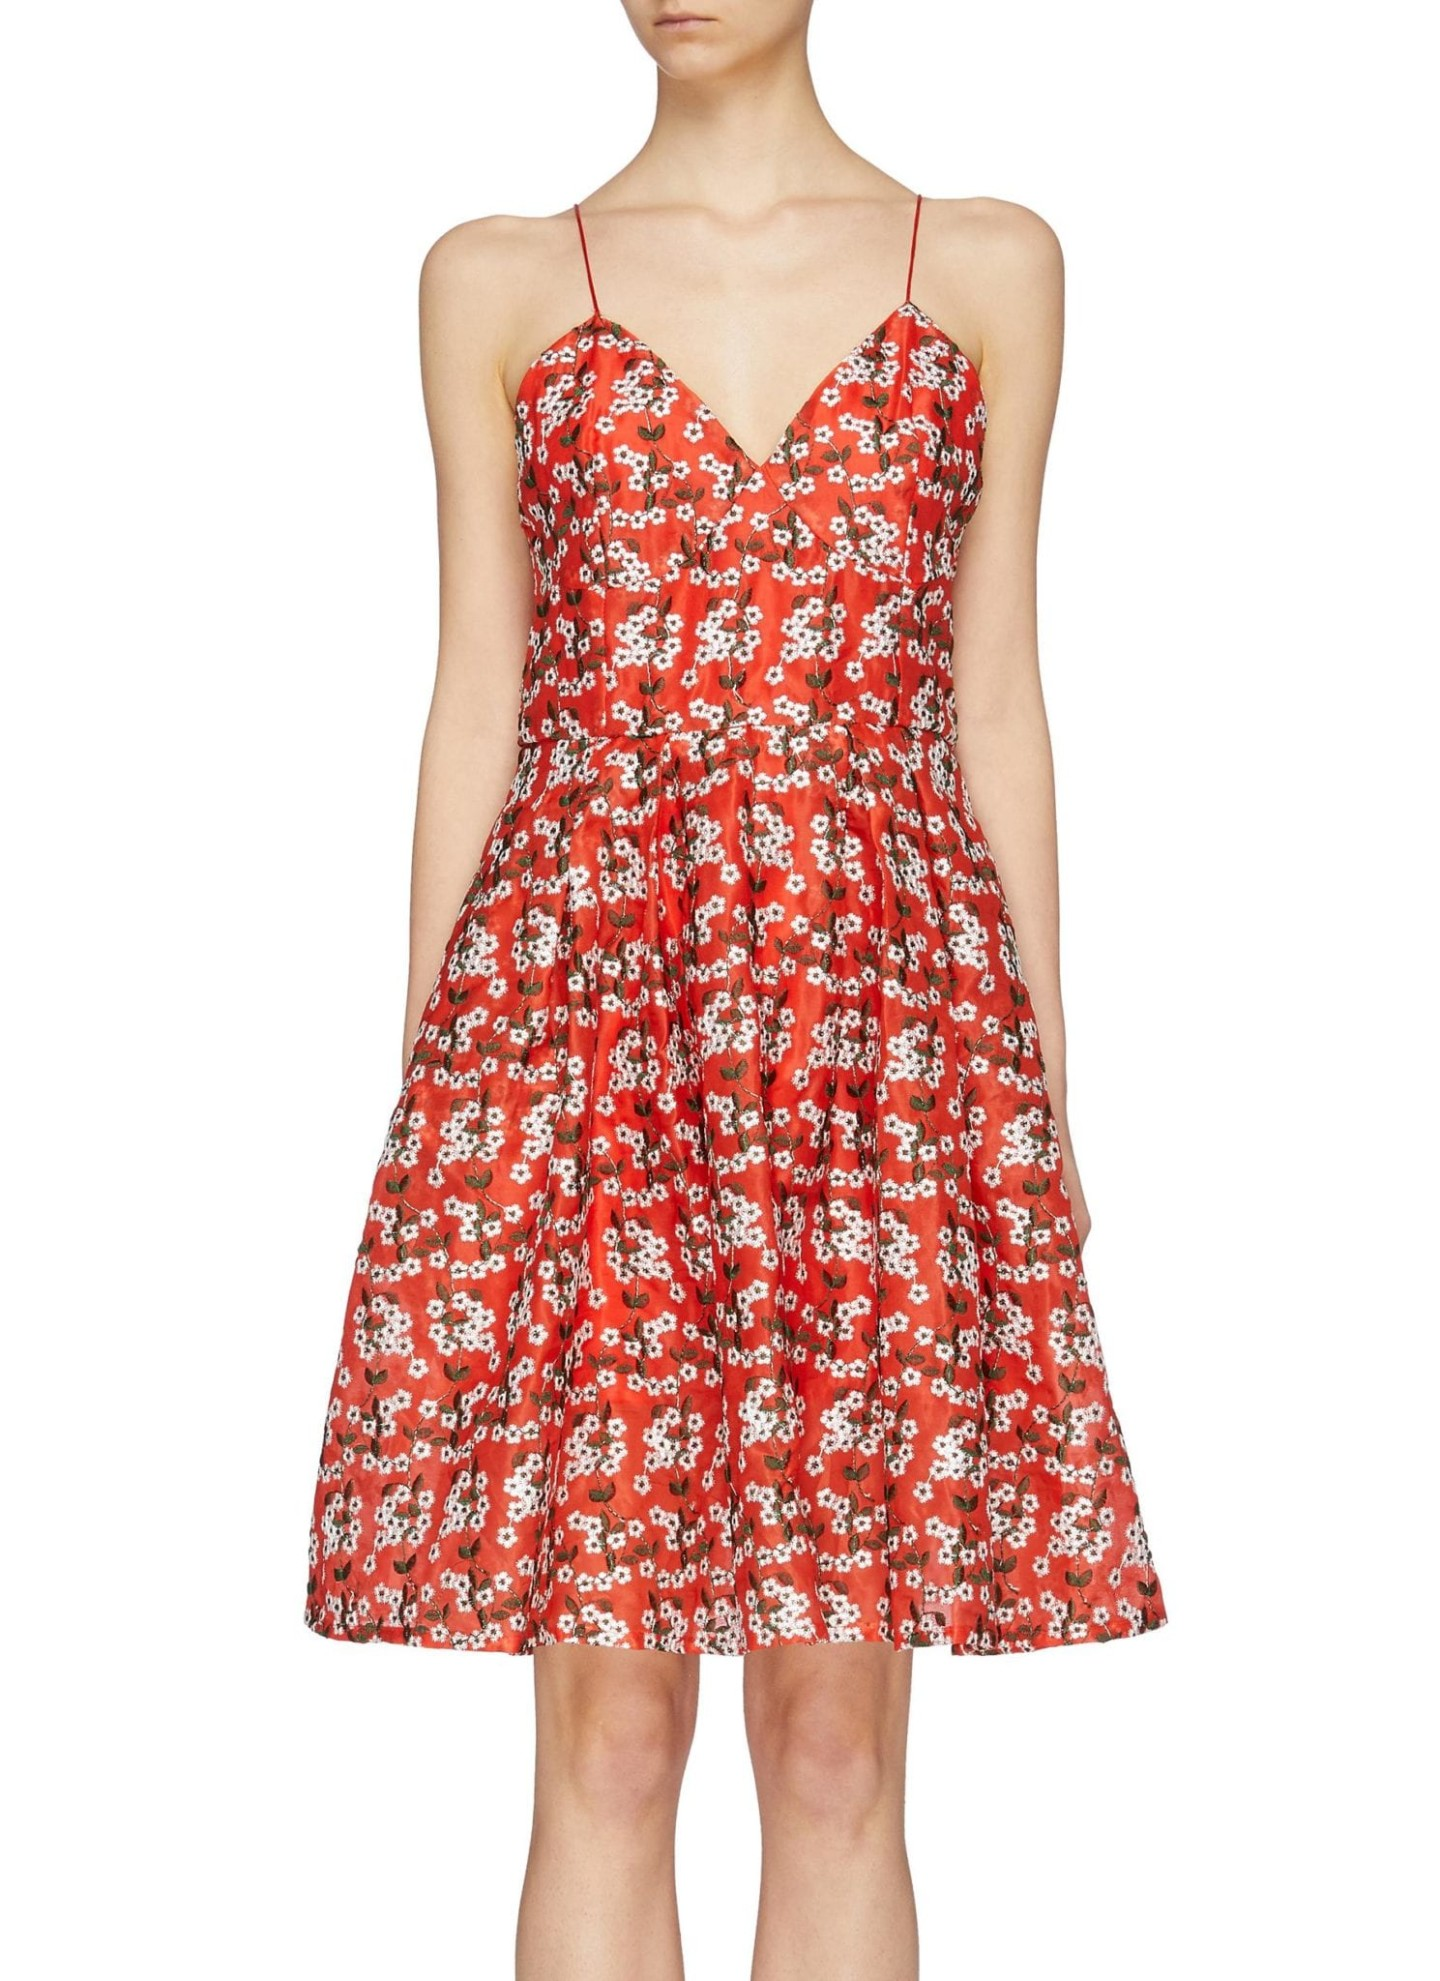 JONATHAN LIANG Floral Embroidered Flared Silk Camisole Red Dress